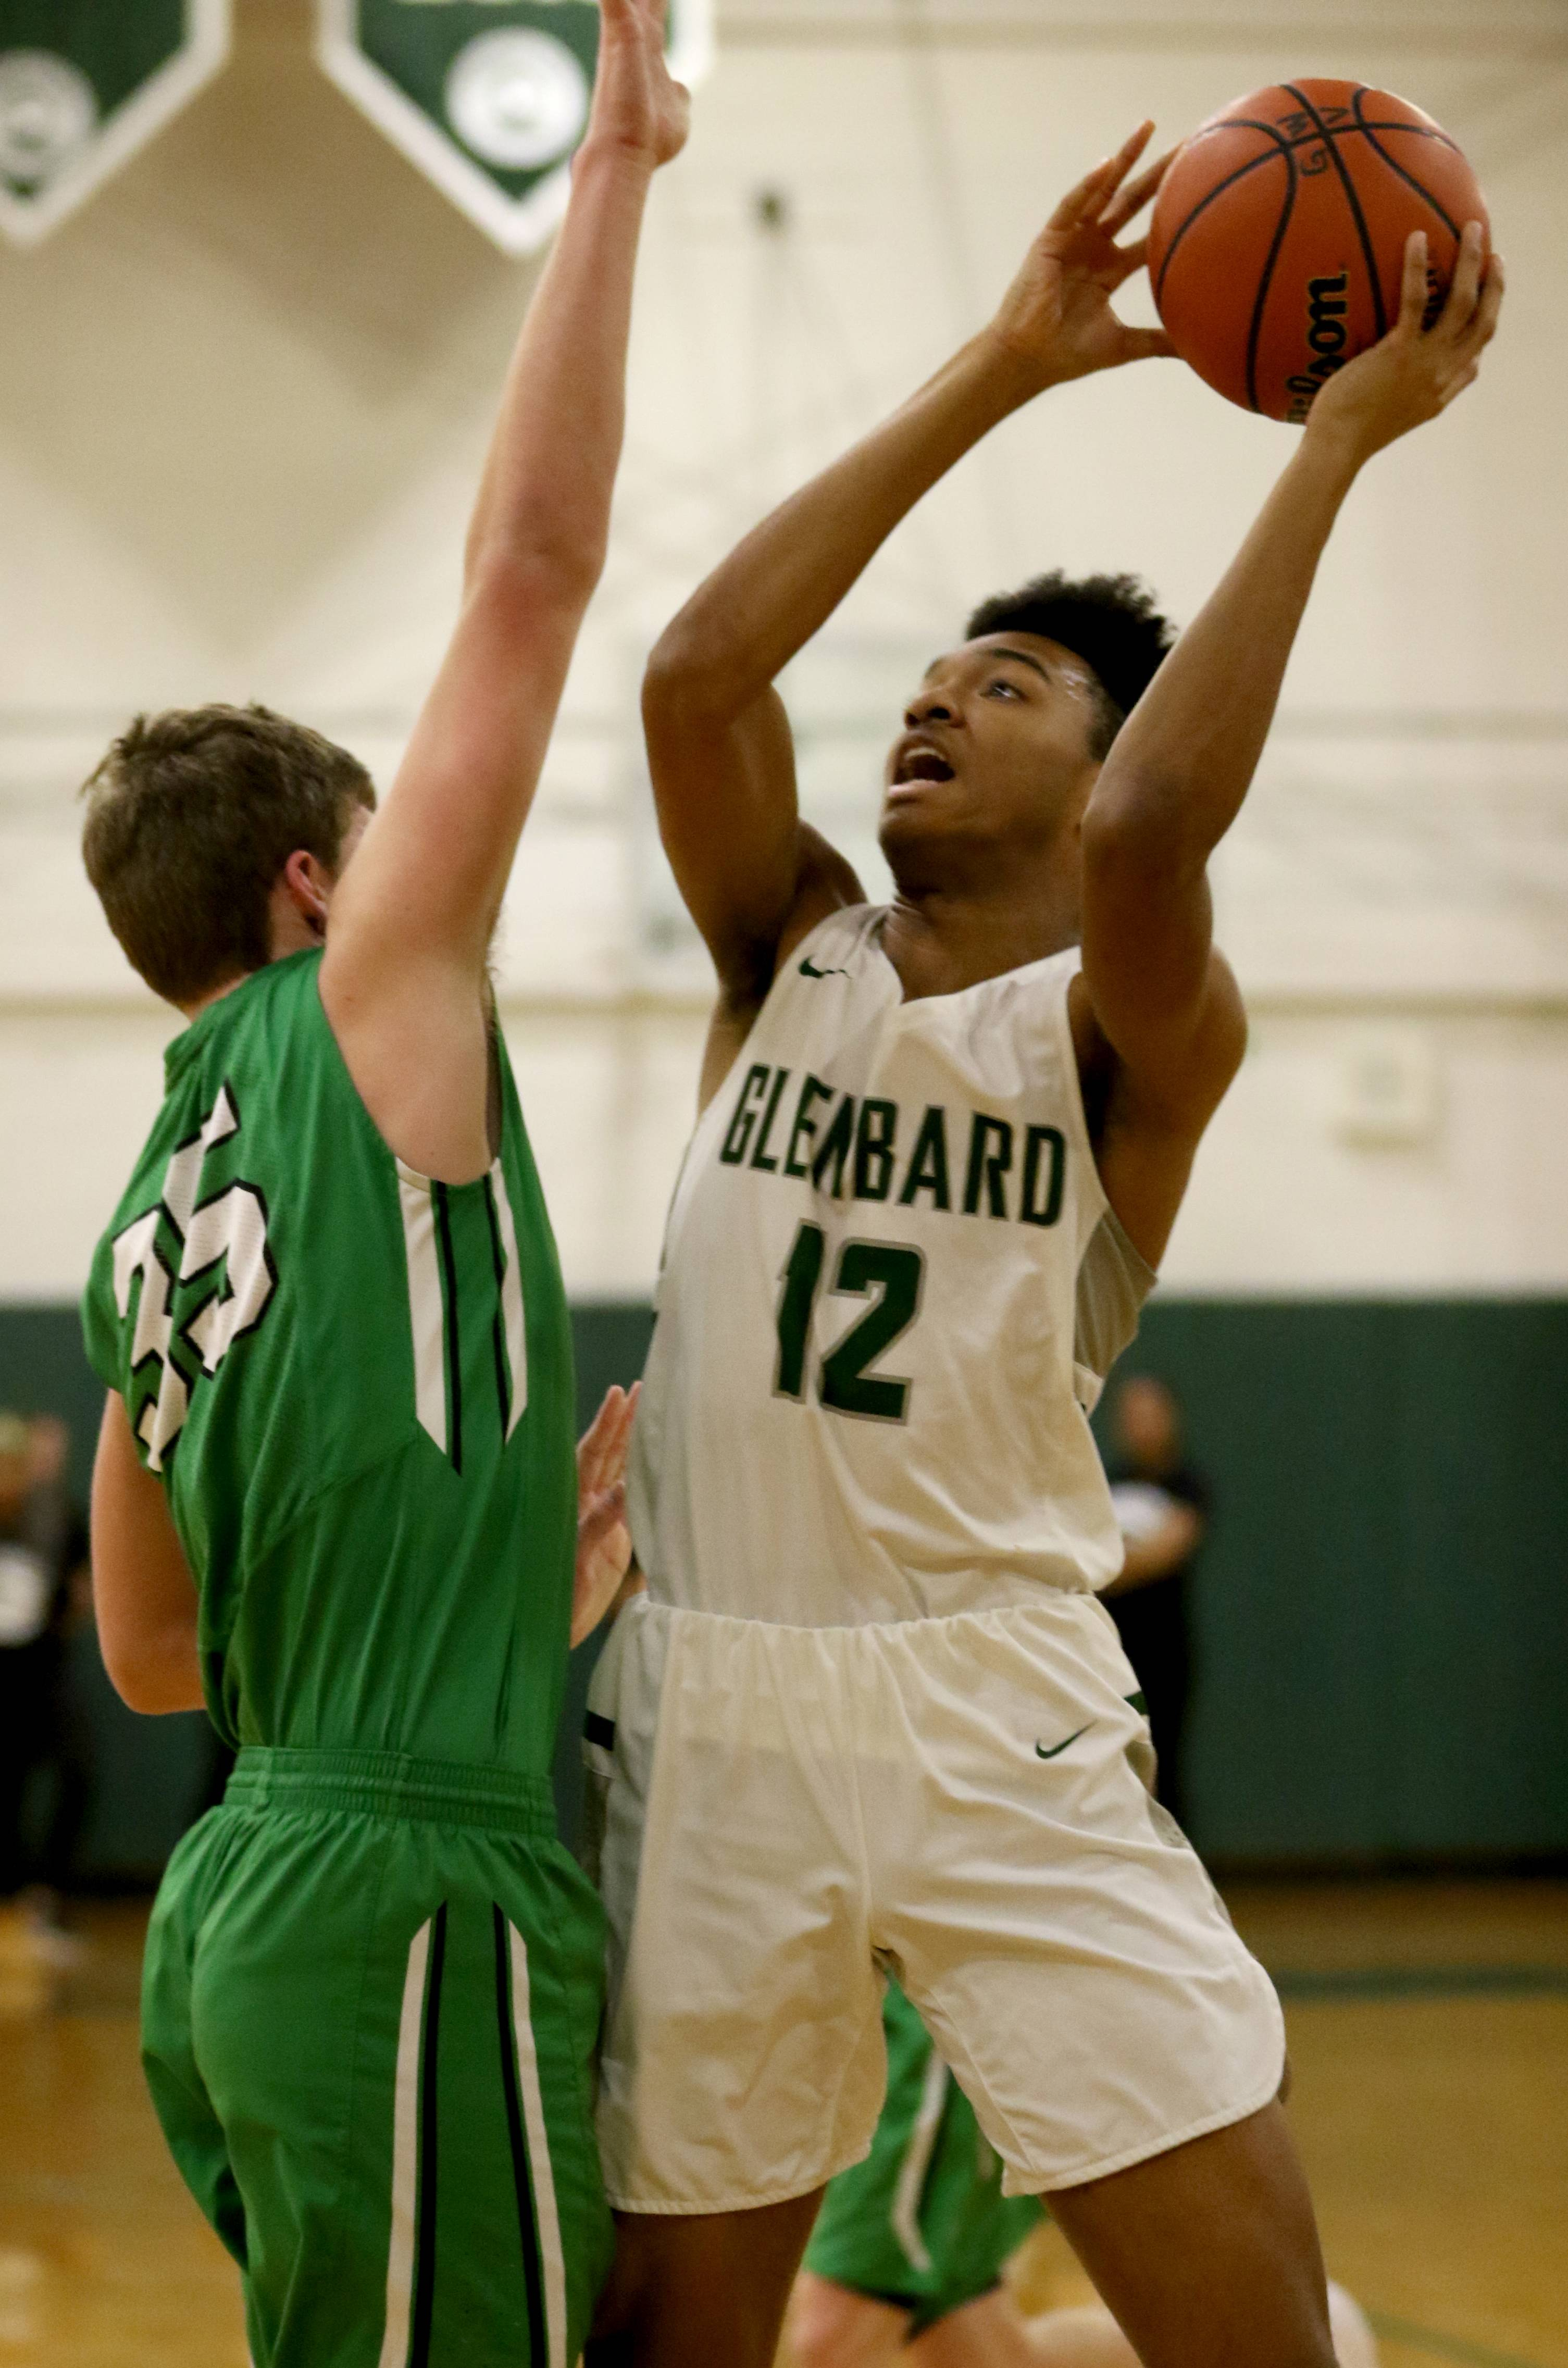 Glenbard West's Evan Taylor during varsity boys basketball against York at Fred L. Biester Gymnasium on the campus of Glenbard West Tuesday night.